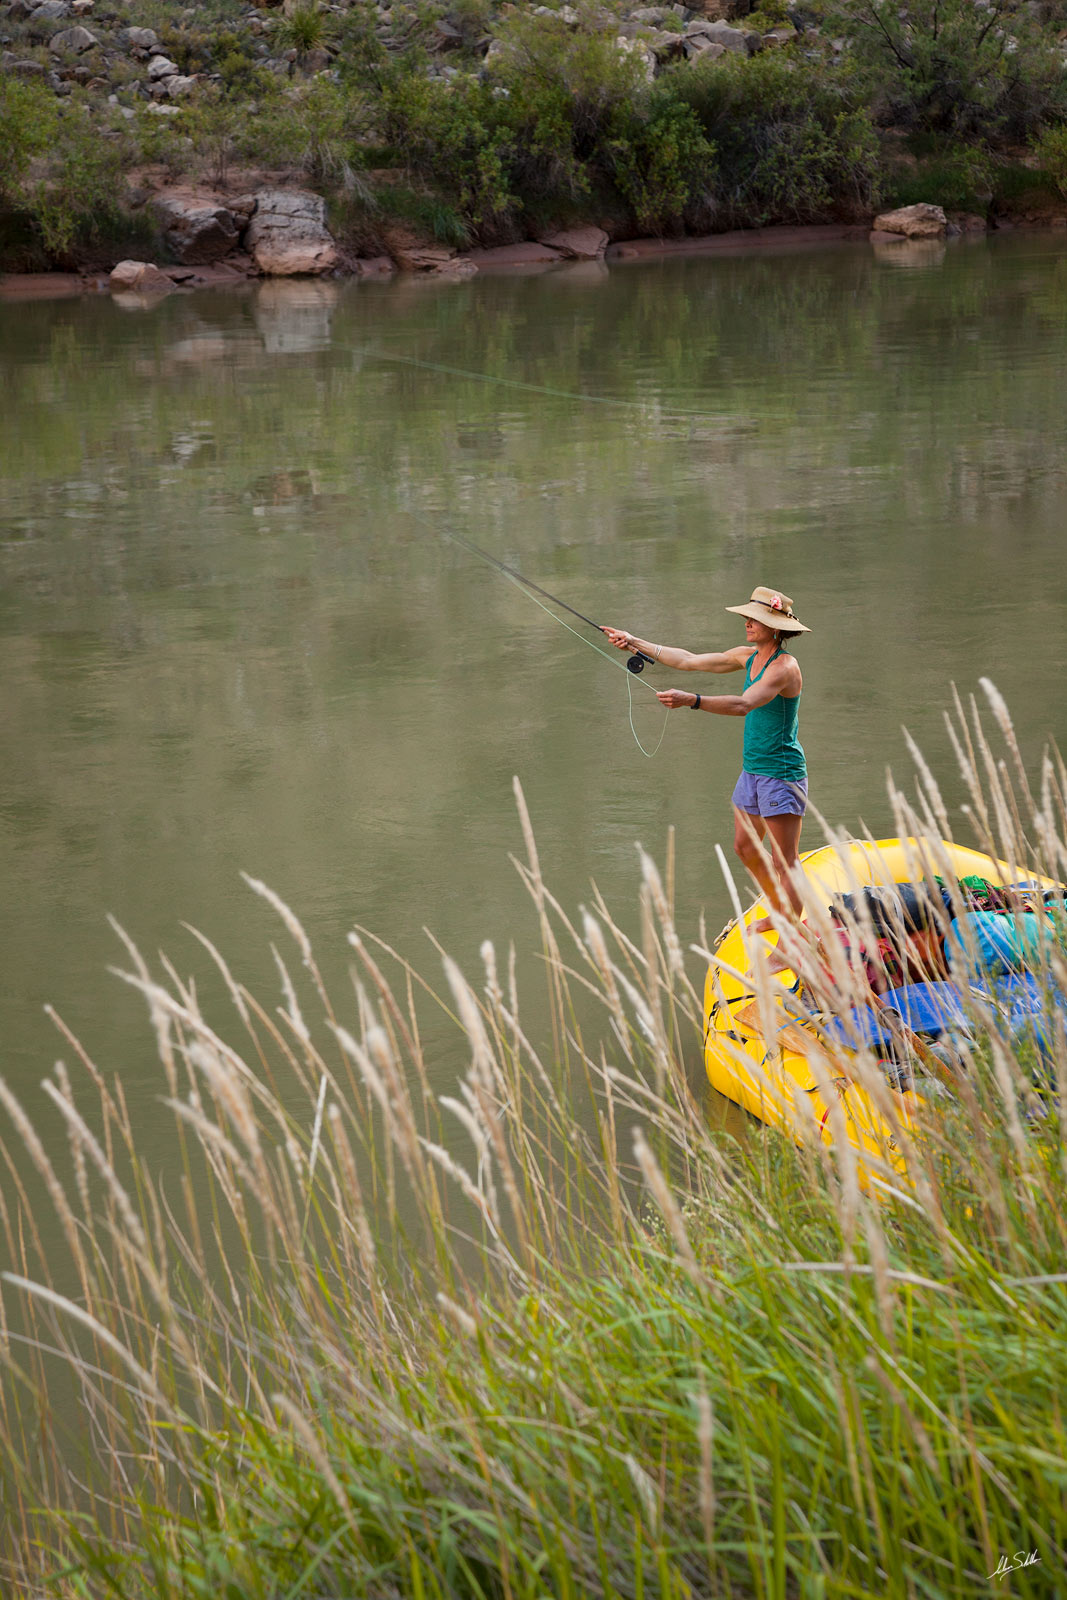 Amy Martin fly fishing on the Colorado River. Grand Canyon National Park in Arizona. Photo © Adam Schallau, All Rights Reserved...